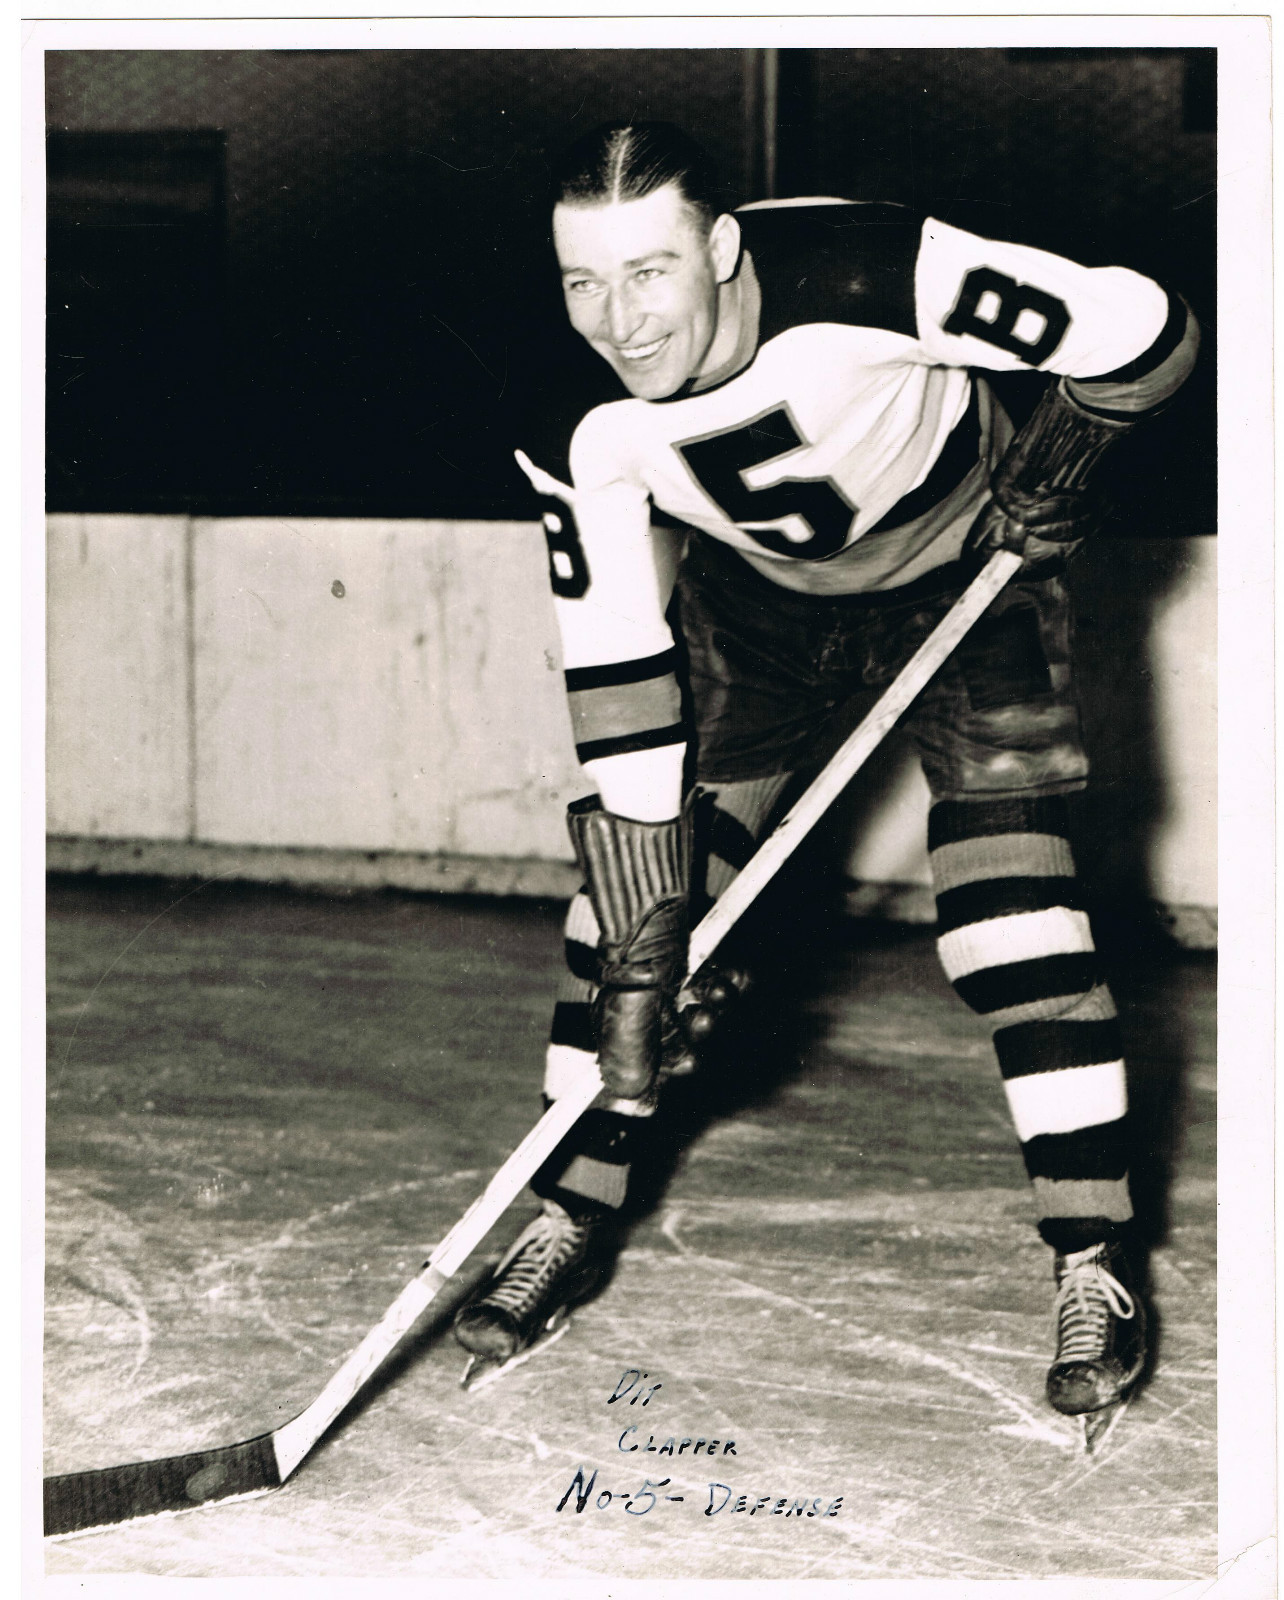 new product 56d9a 13c01 Dit Clapper - Boston Bruins Press Photo - 1930s | HockeyGods